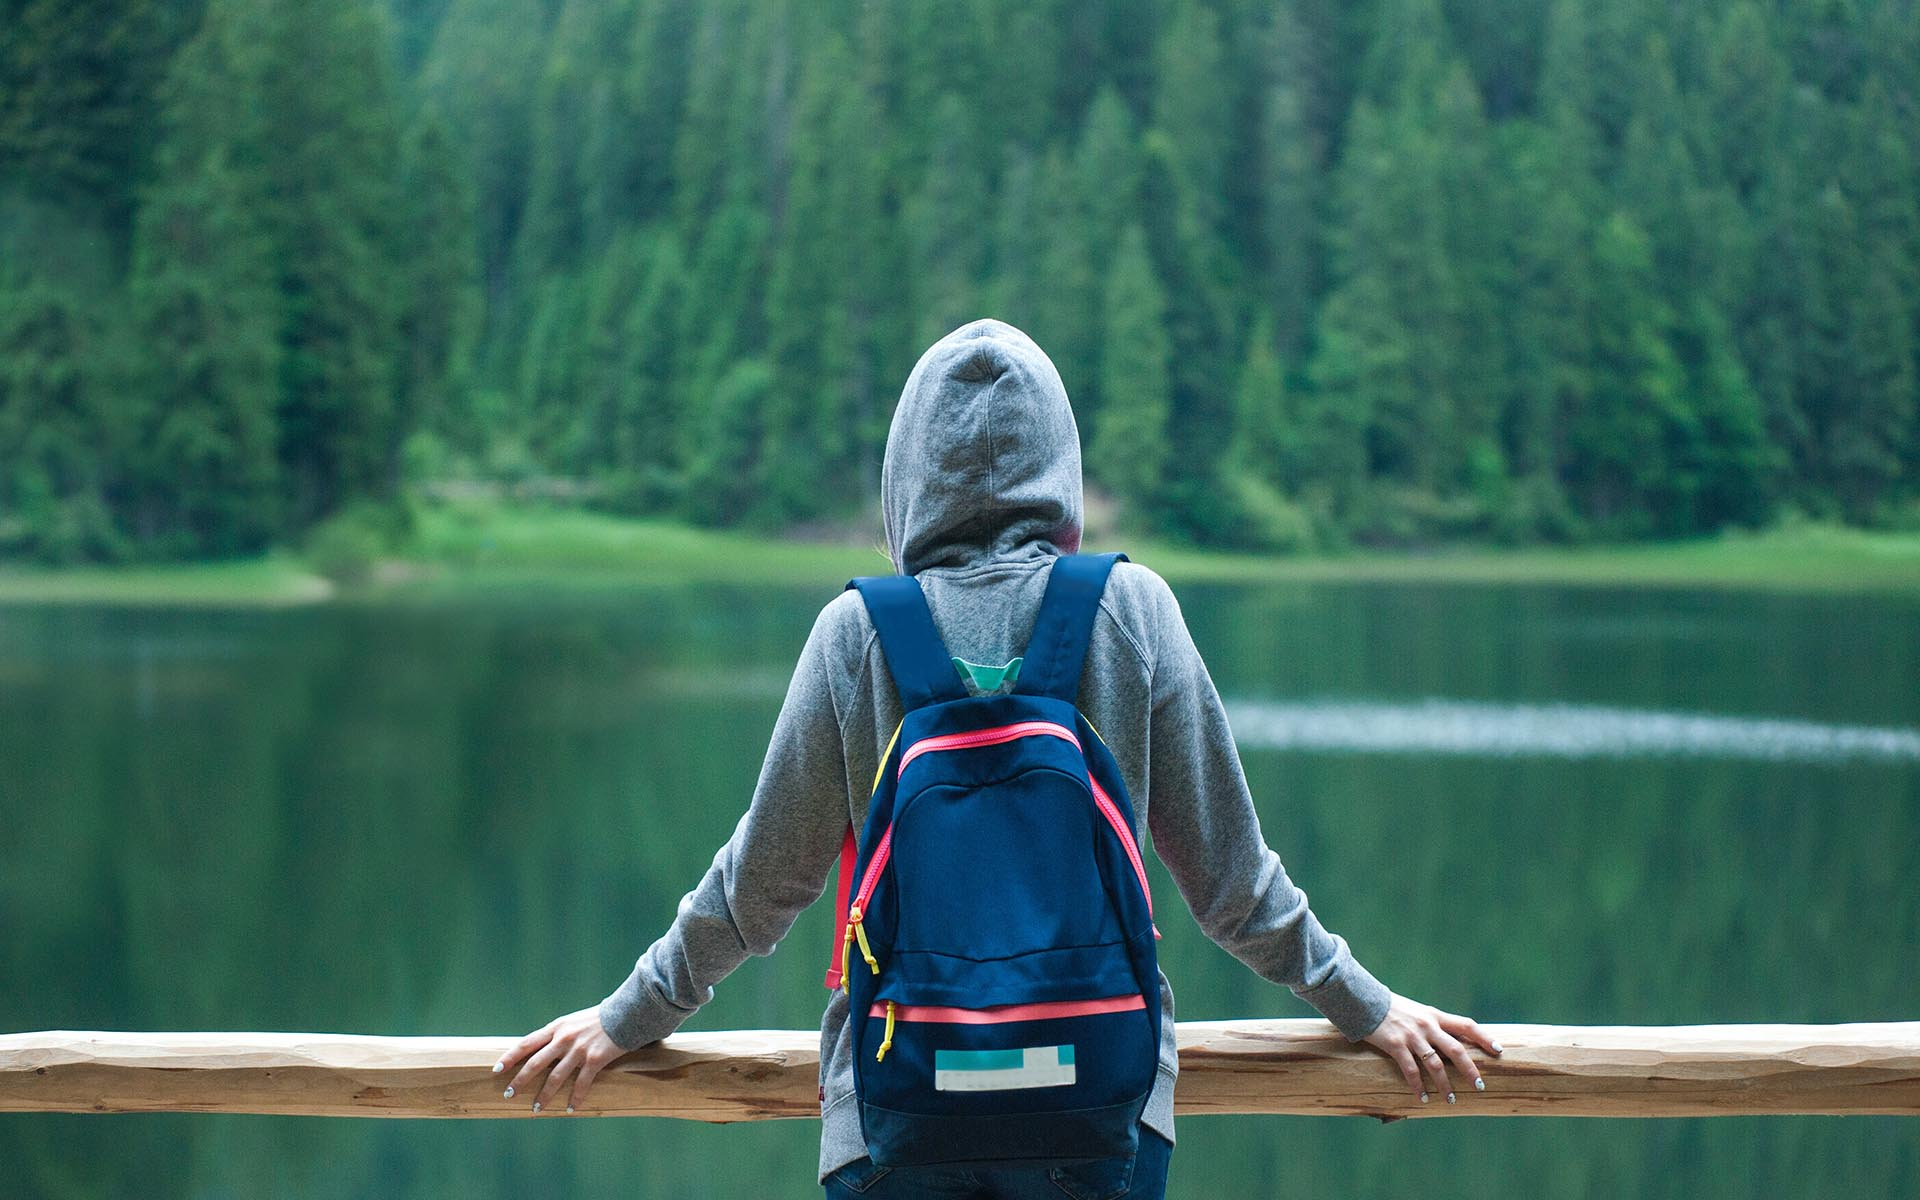 Image of person standing alone celebrating National Introverts Week